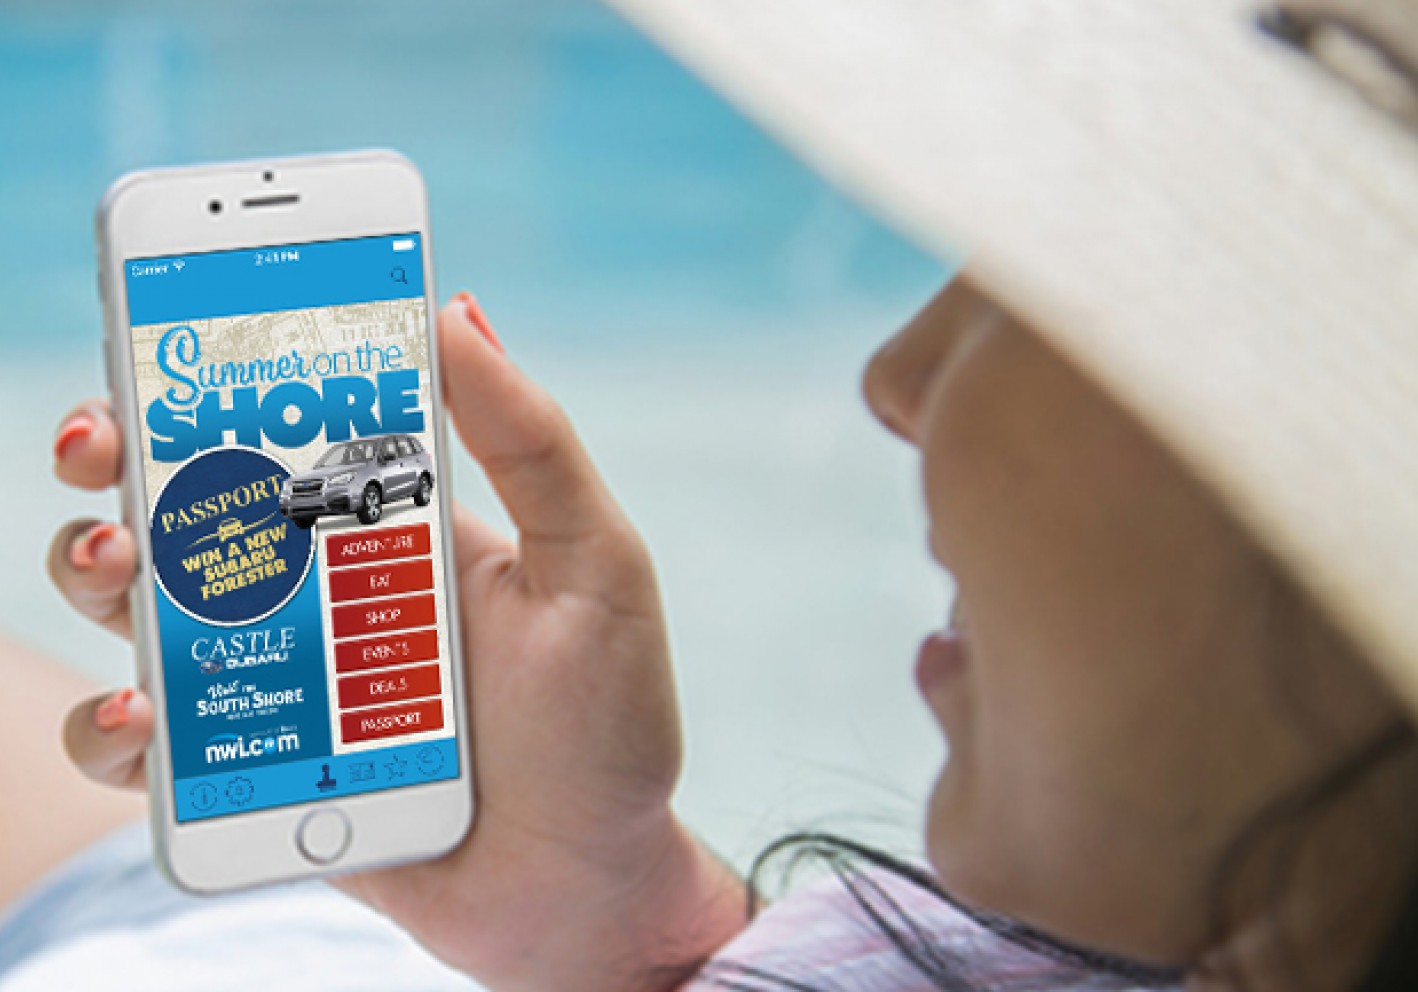 Contests on a app can increase ROI